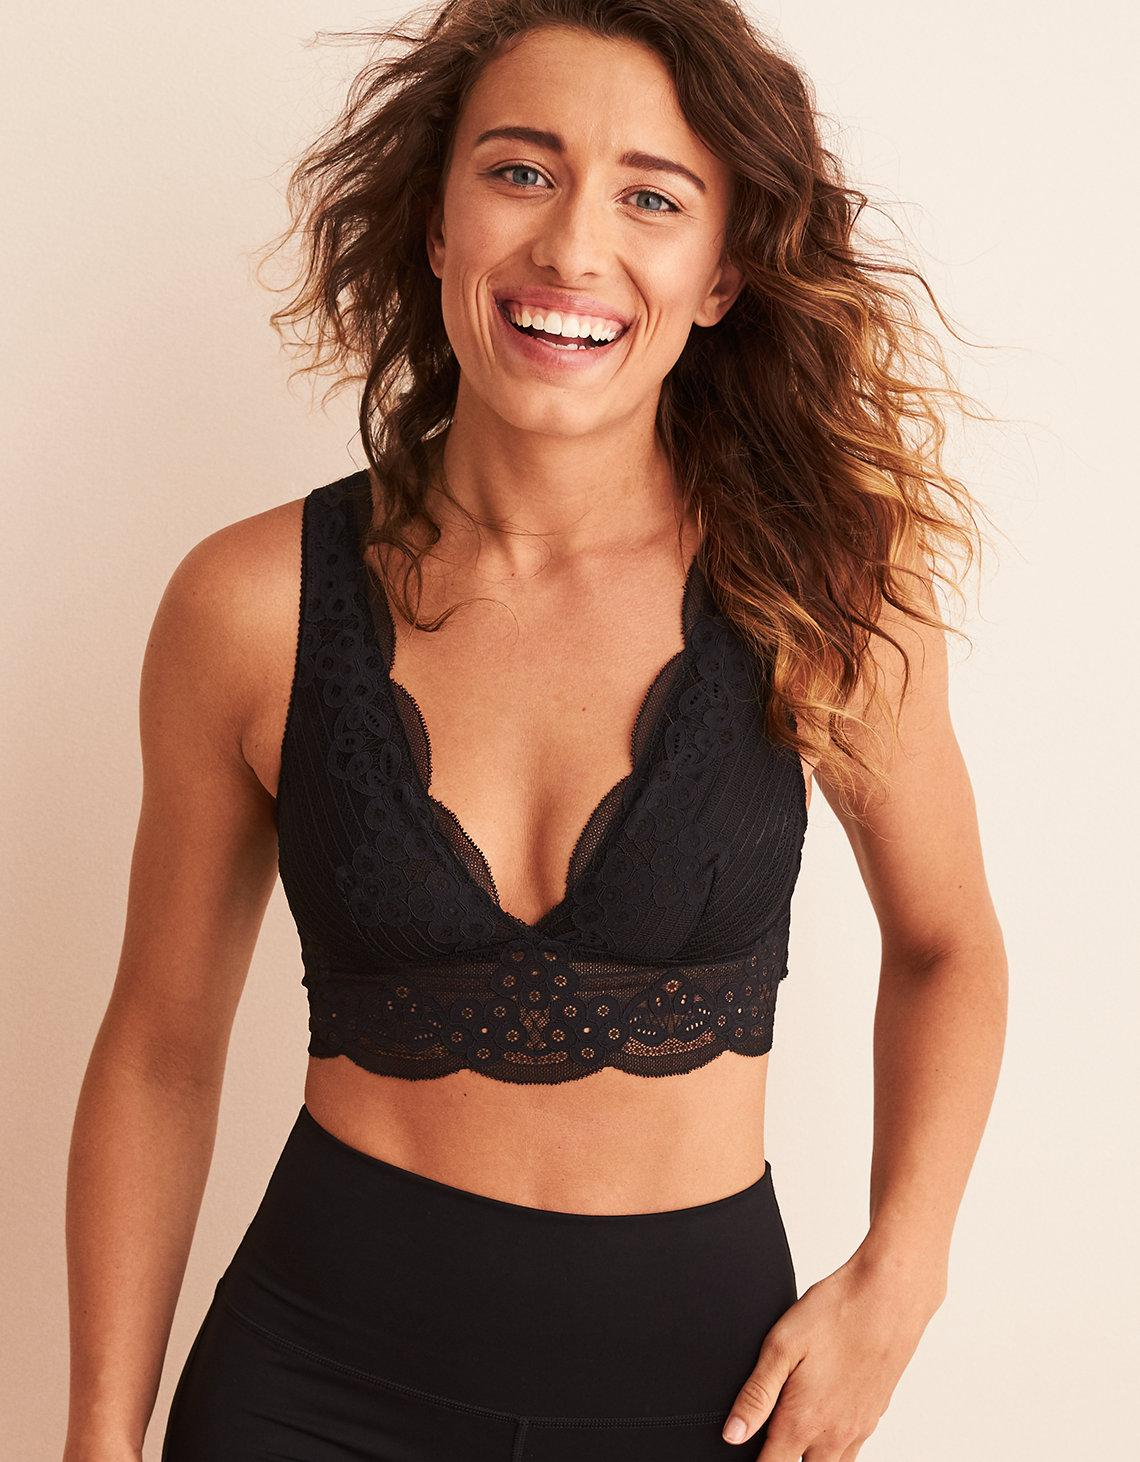 cadfe006a7ee4 Lyst - American Eagle Wonder Lace Strappy Back Bralette in Black